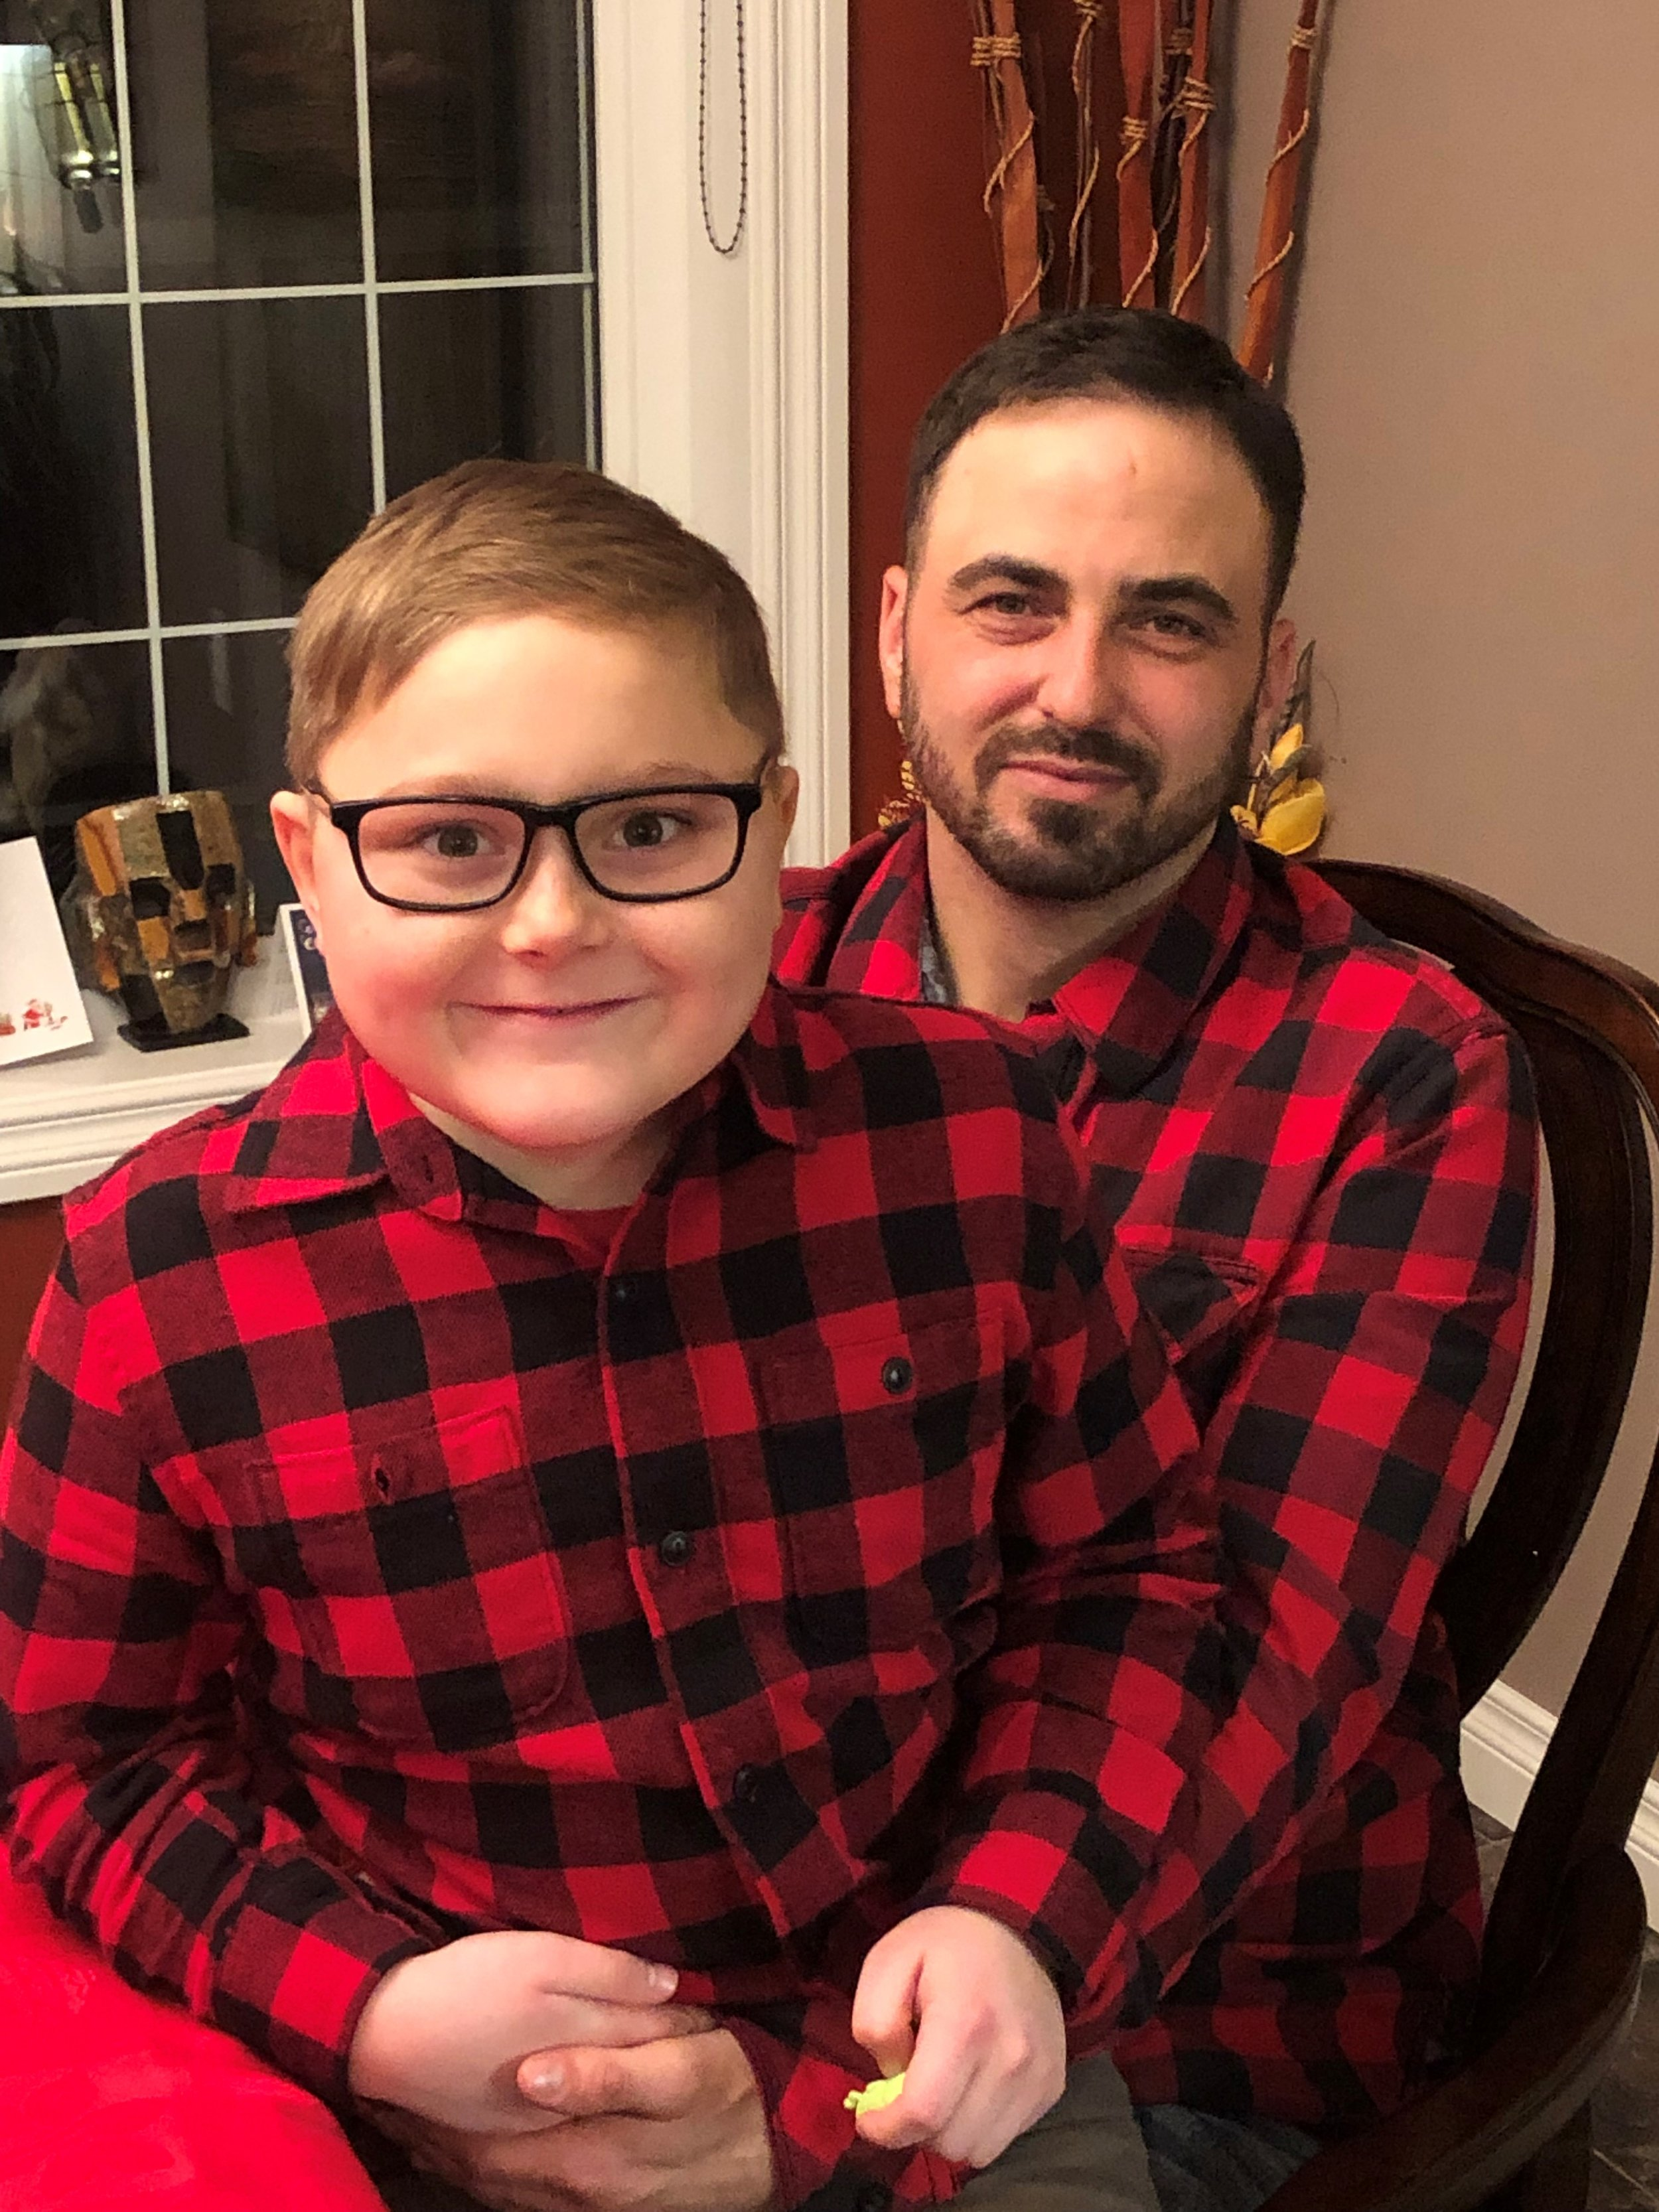 Pictured: Holdyn  and his dad matching in plaid!